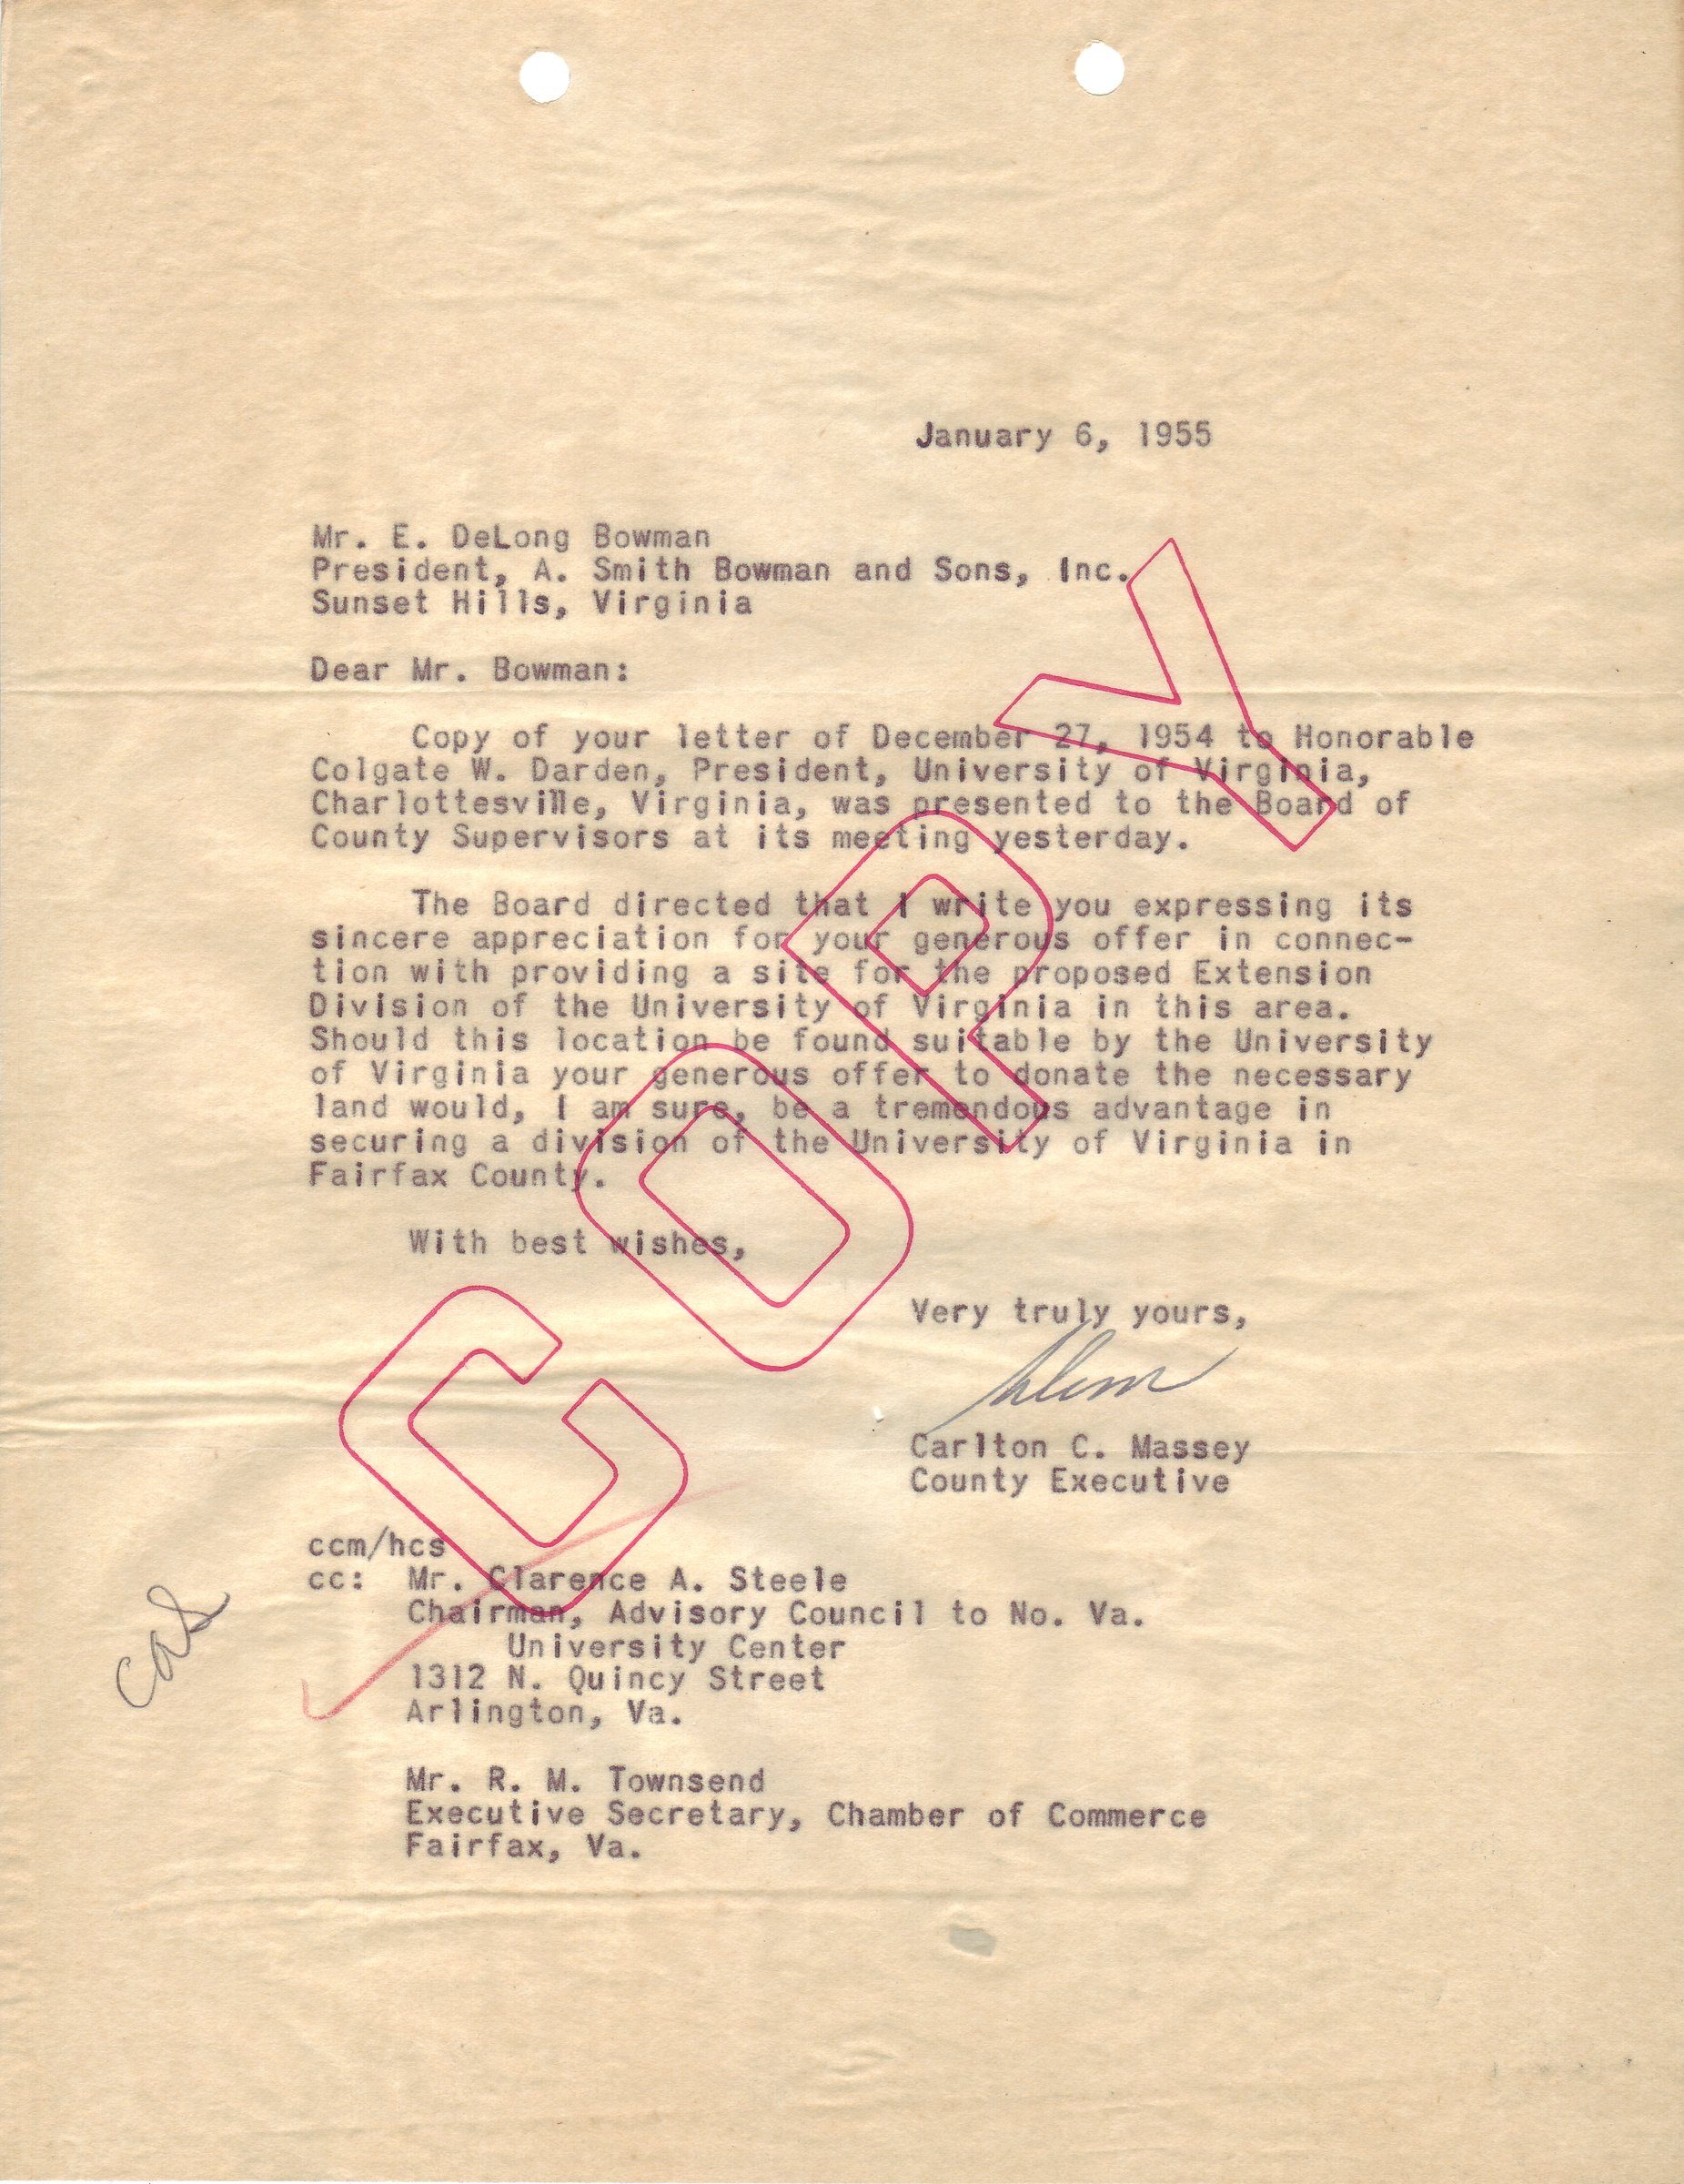 Carlton C. Massey to E. DeLong Bowman, January 6, 1955.